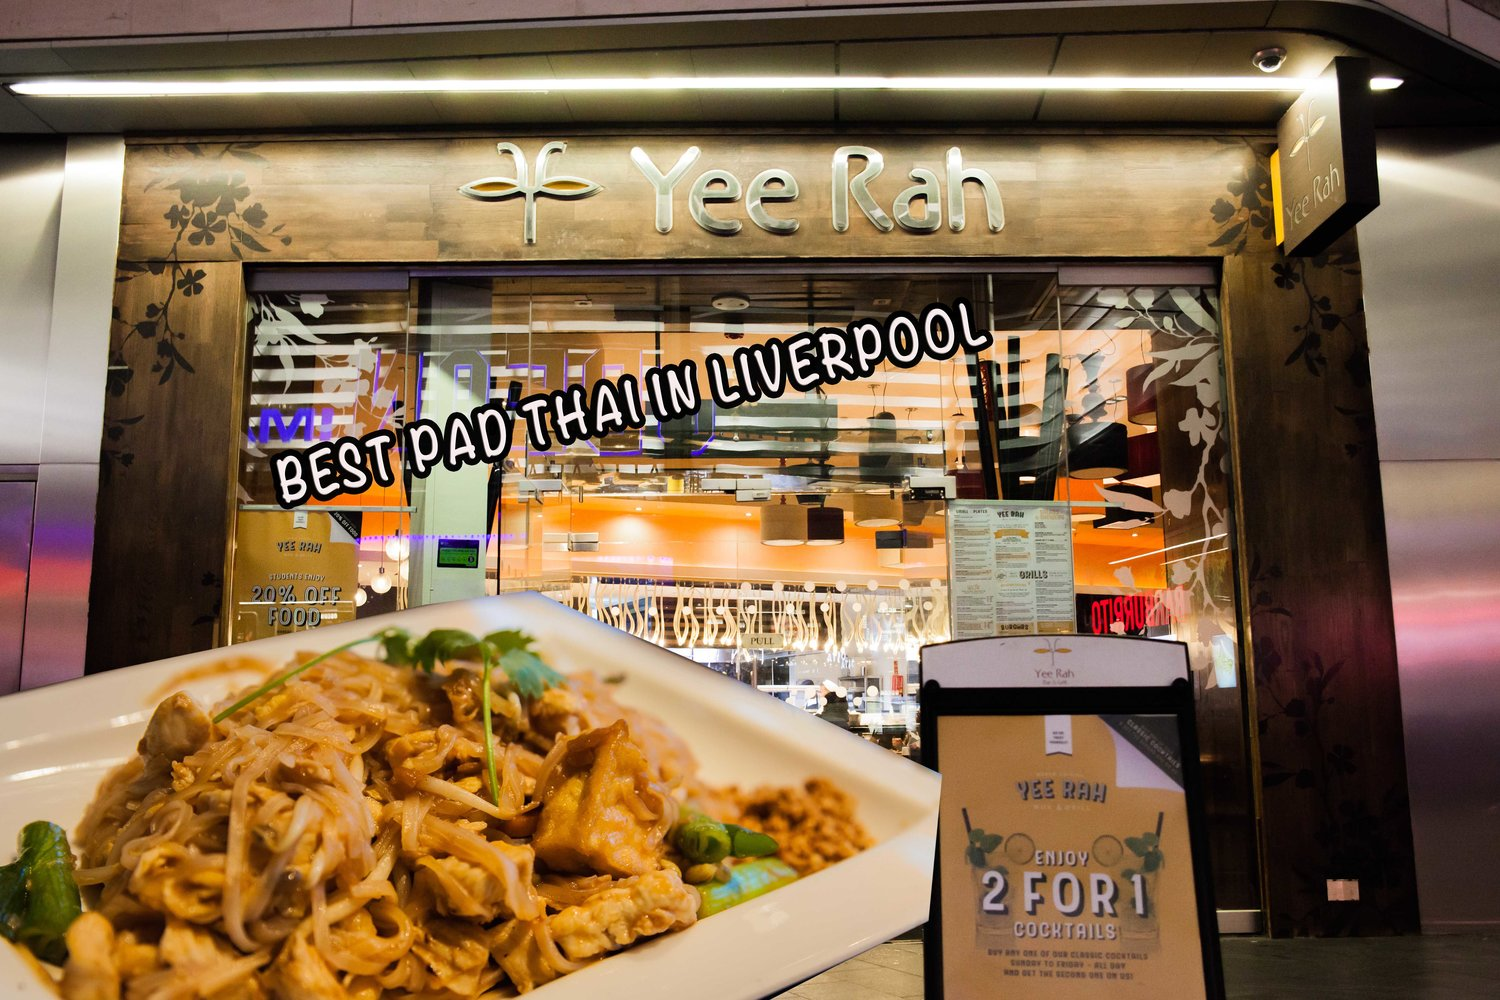 Yee Rah - Yee Rah In Liverpool ONE invited me to come in and do a review of their food, drinks & atmosphere.